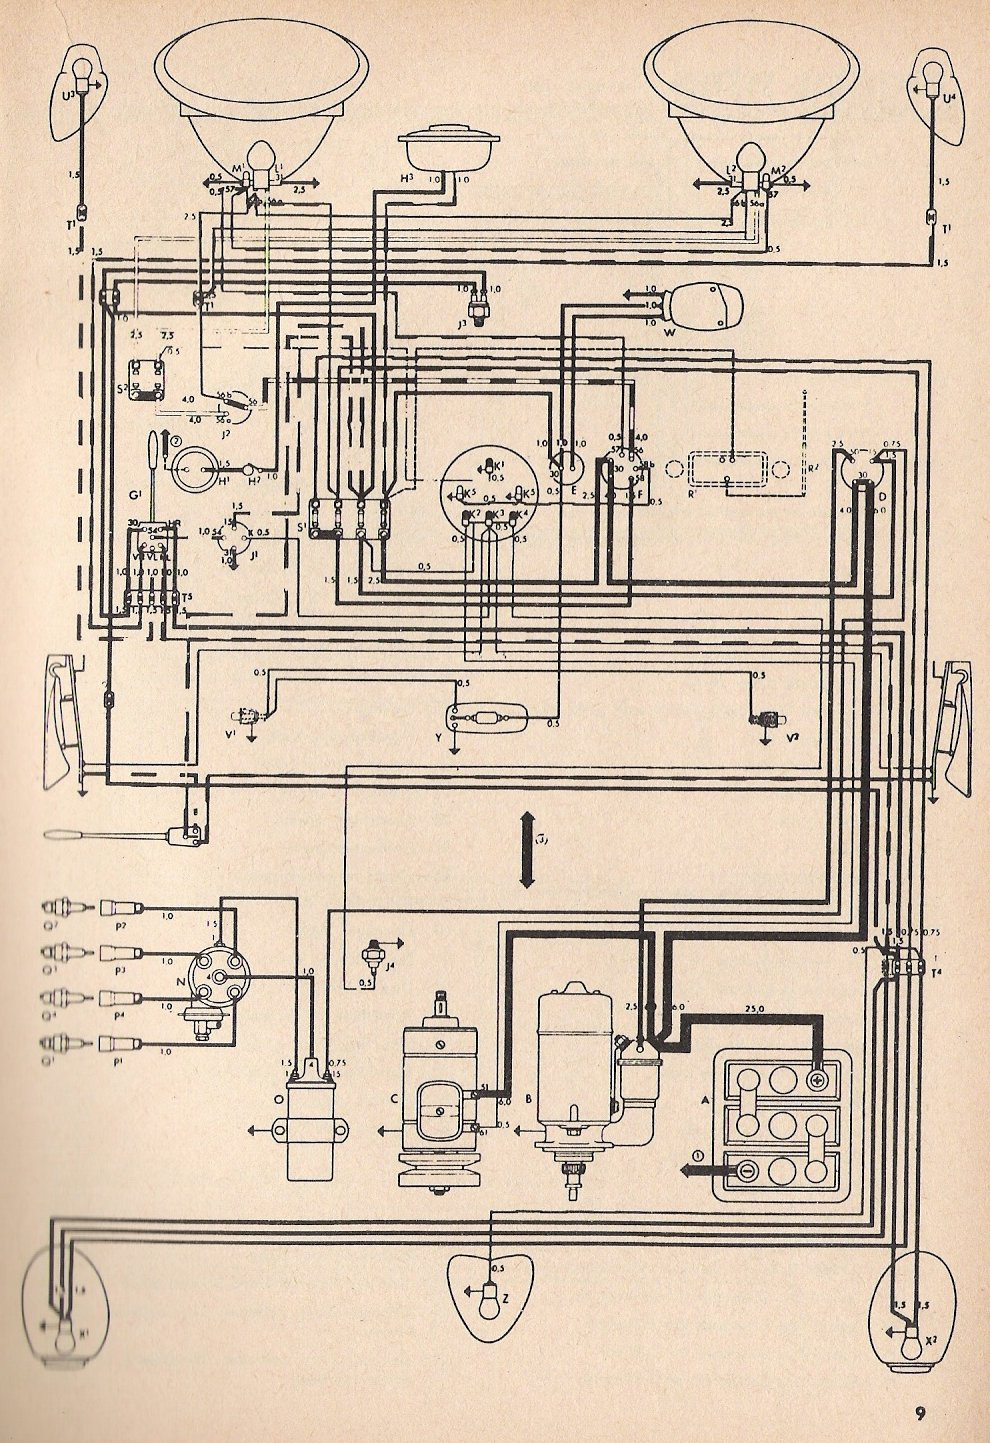 1956 Vw Bug Wiring Diagram Free Image Wiring Diagram Engine